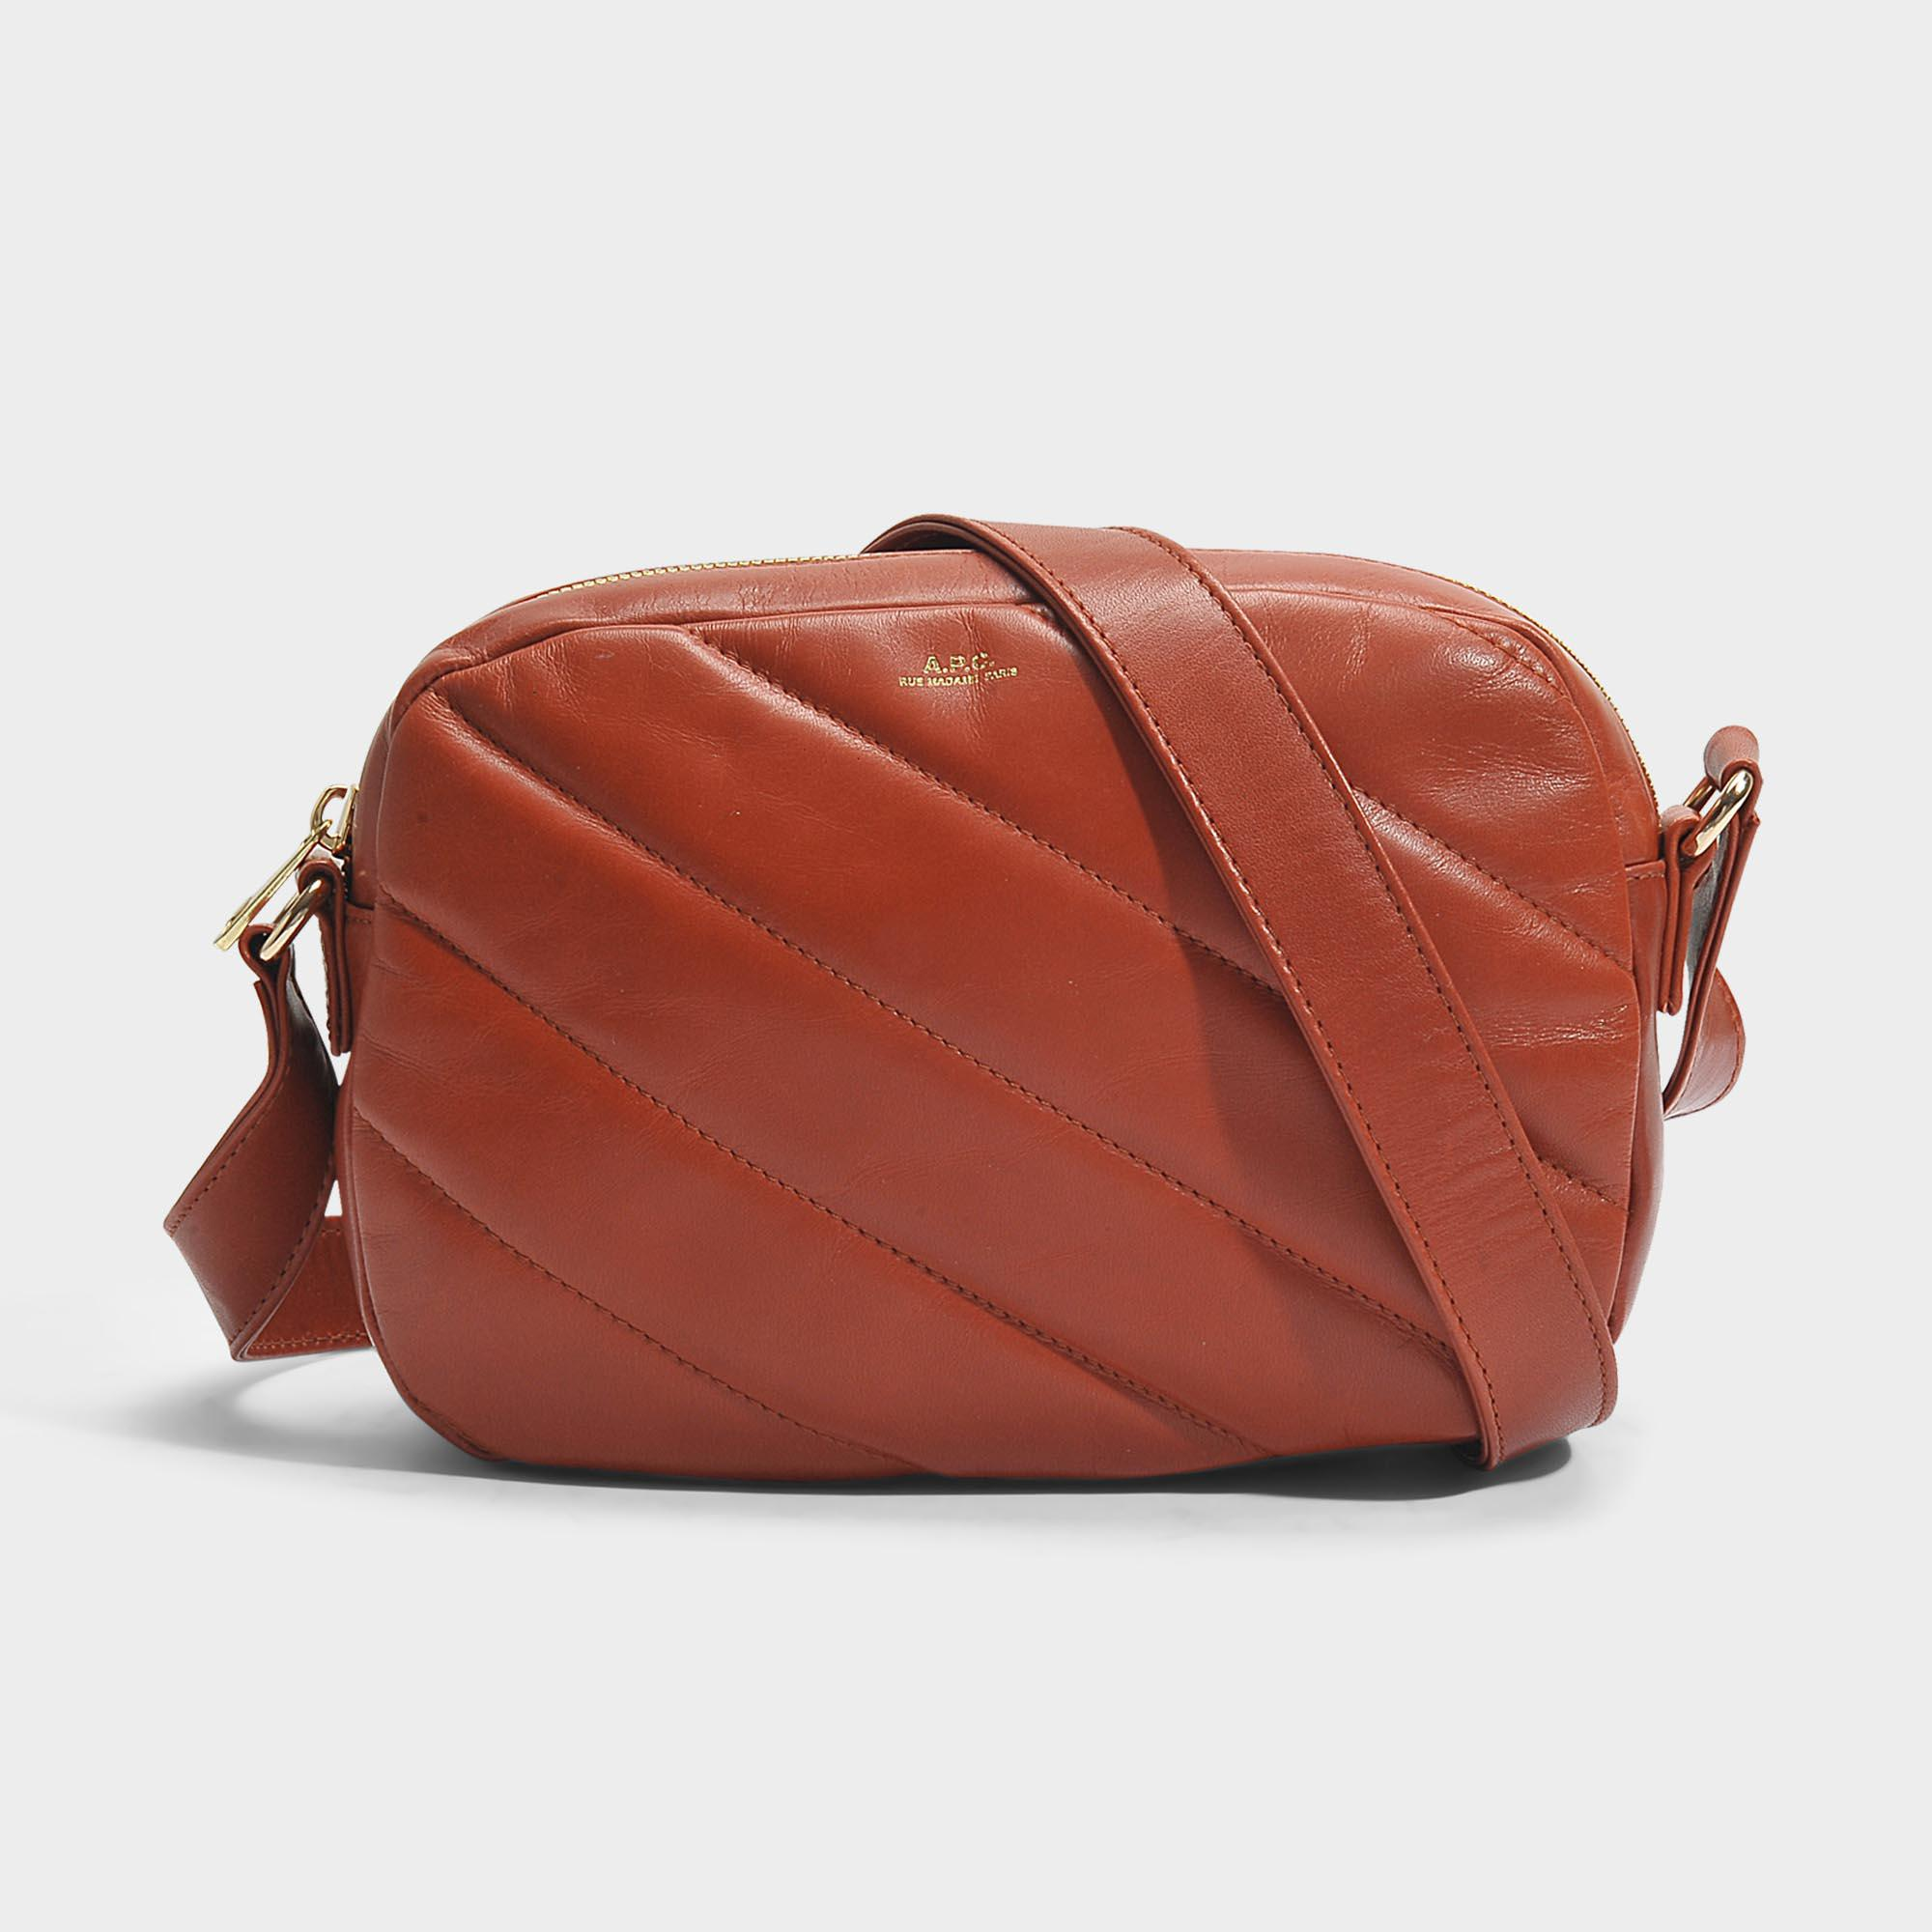 Meryl Bag in Dark Red Smooth Calfskin A.P.C. Cheap Sale Get To Buy Where To Buy Low Price Discount Authentic Cheap Sale For Cheap Buy Cheap Discount GWungkW